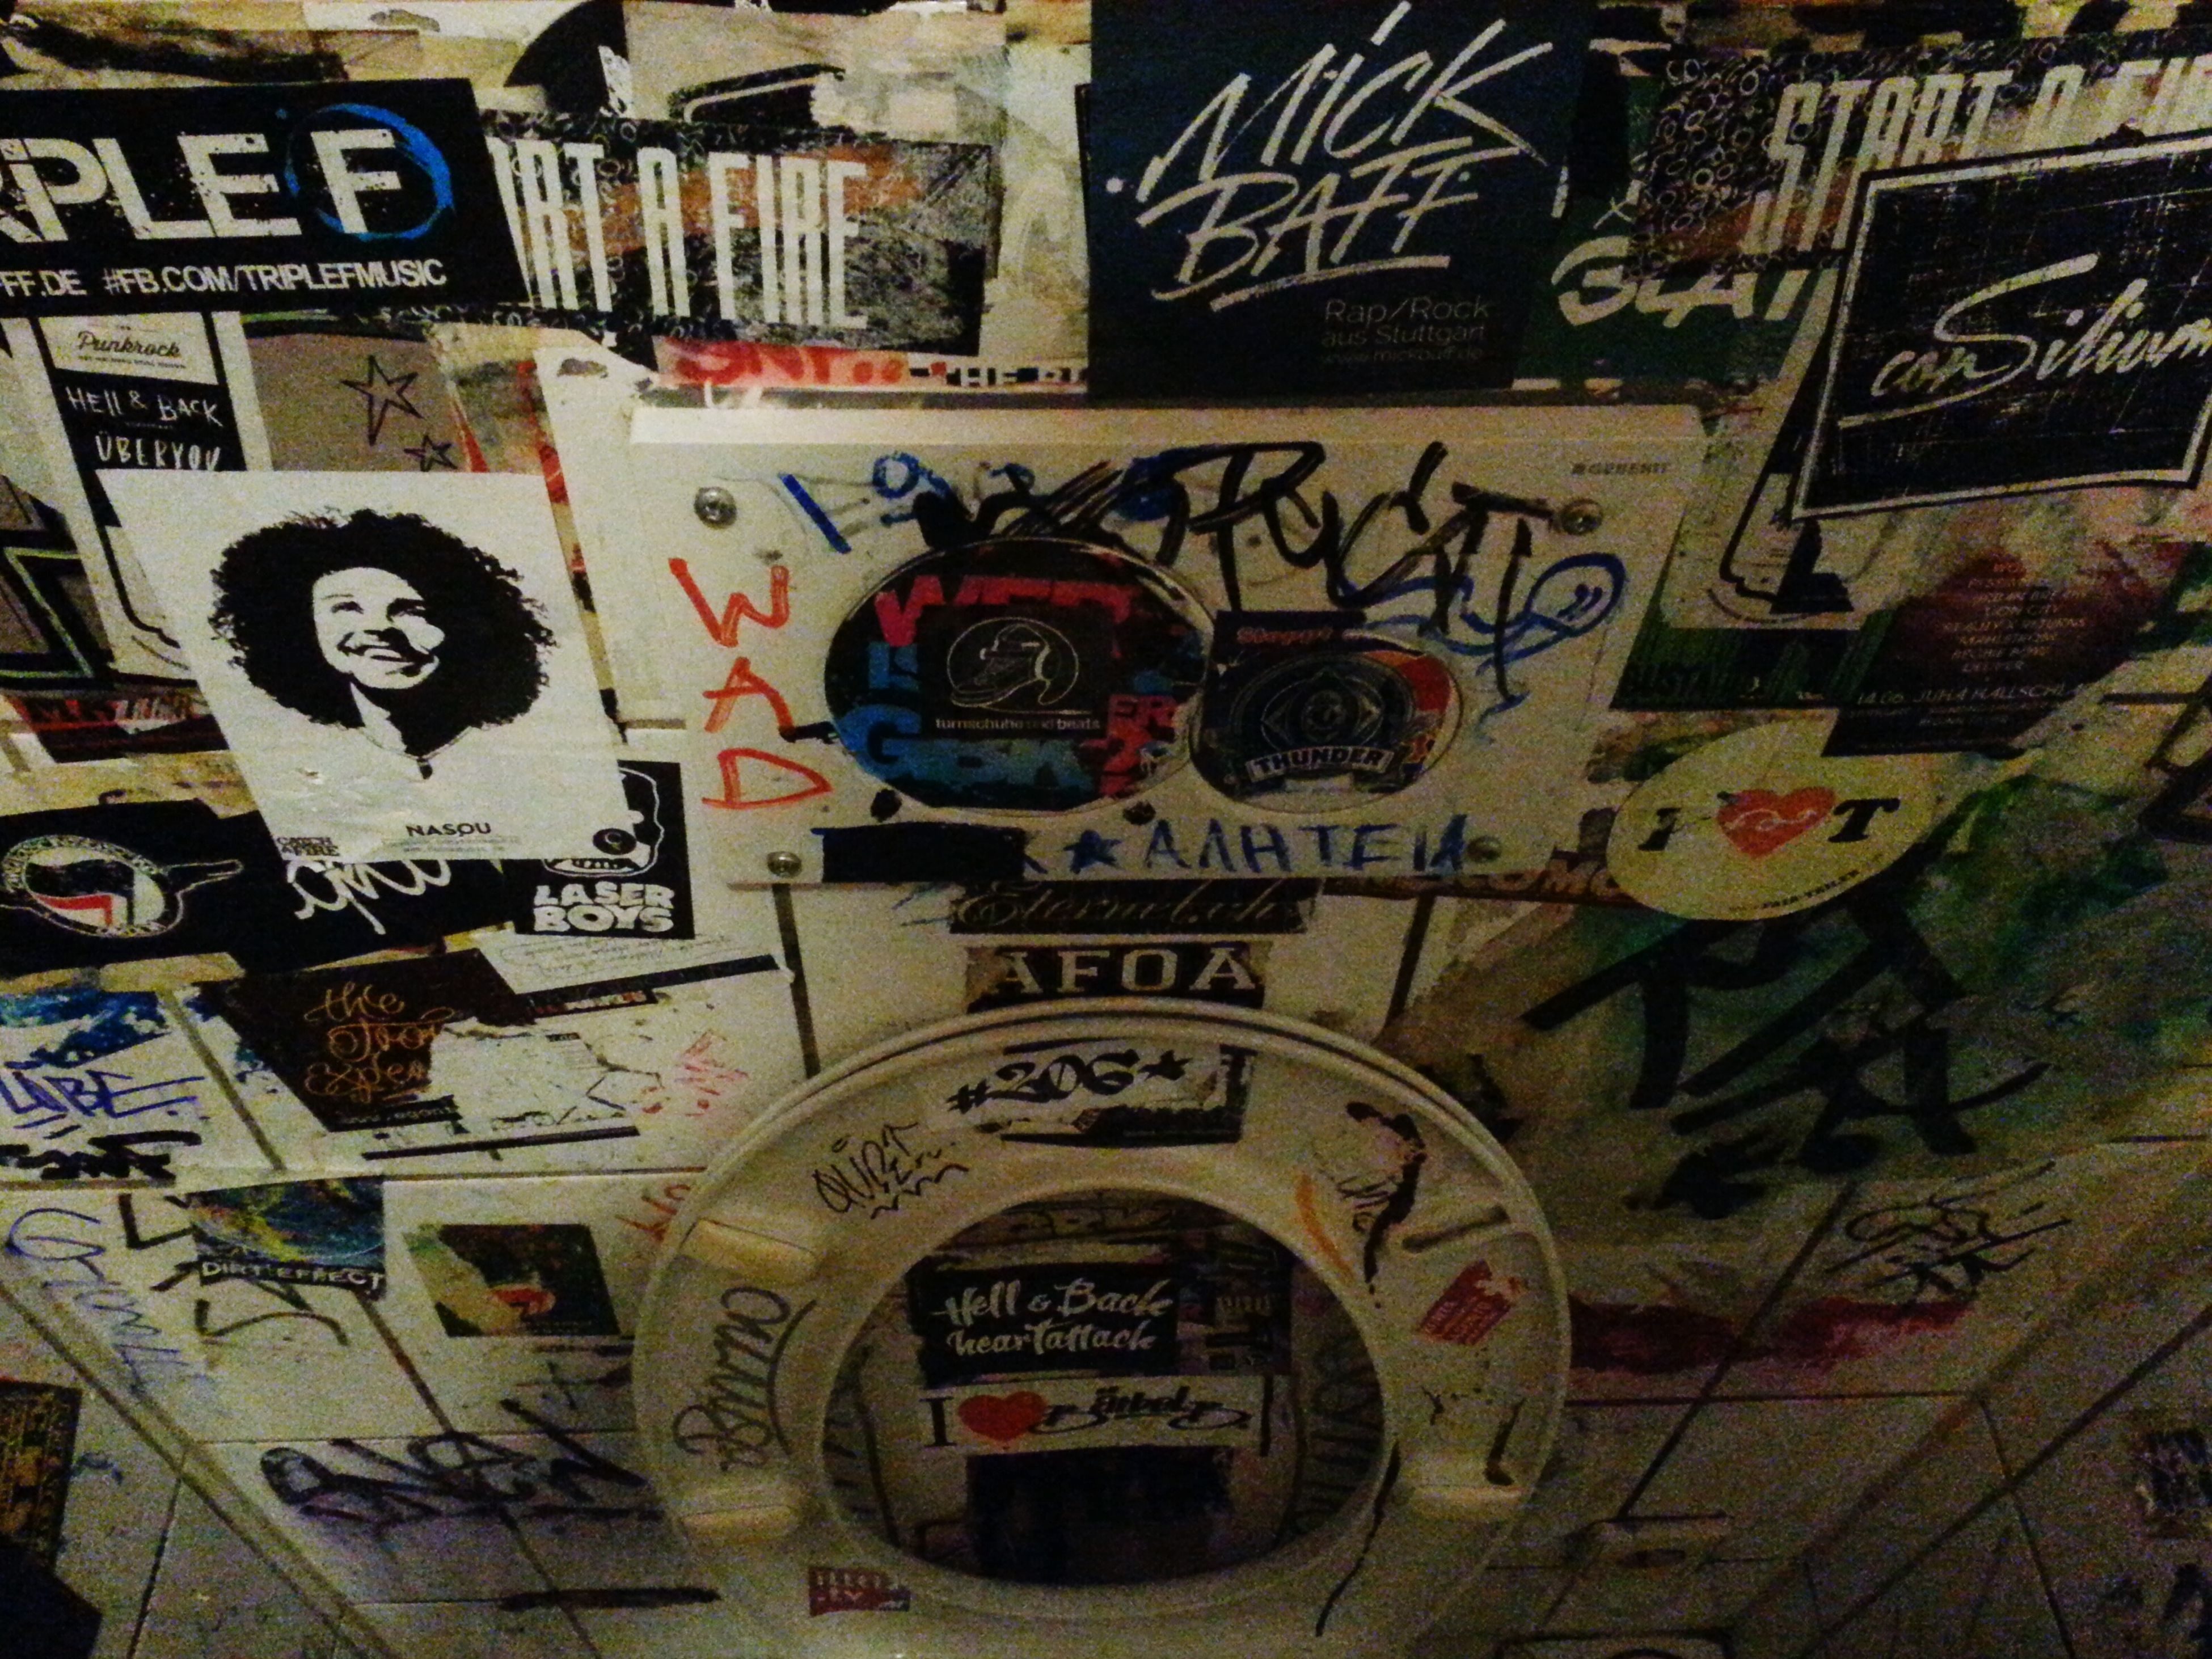 Party Hard Drinking Beer Toilette Art Stuttgart Germany Kap Tormentoso KNEIPE Pub Crazy